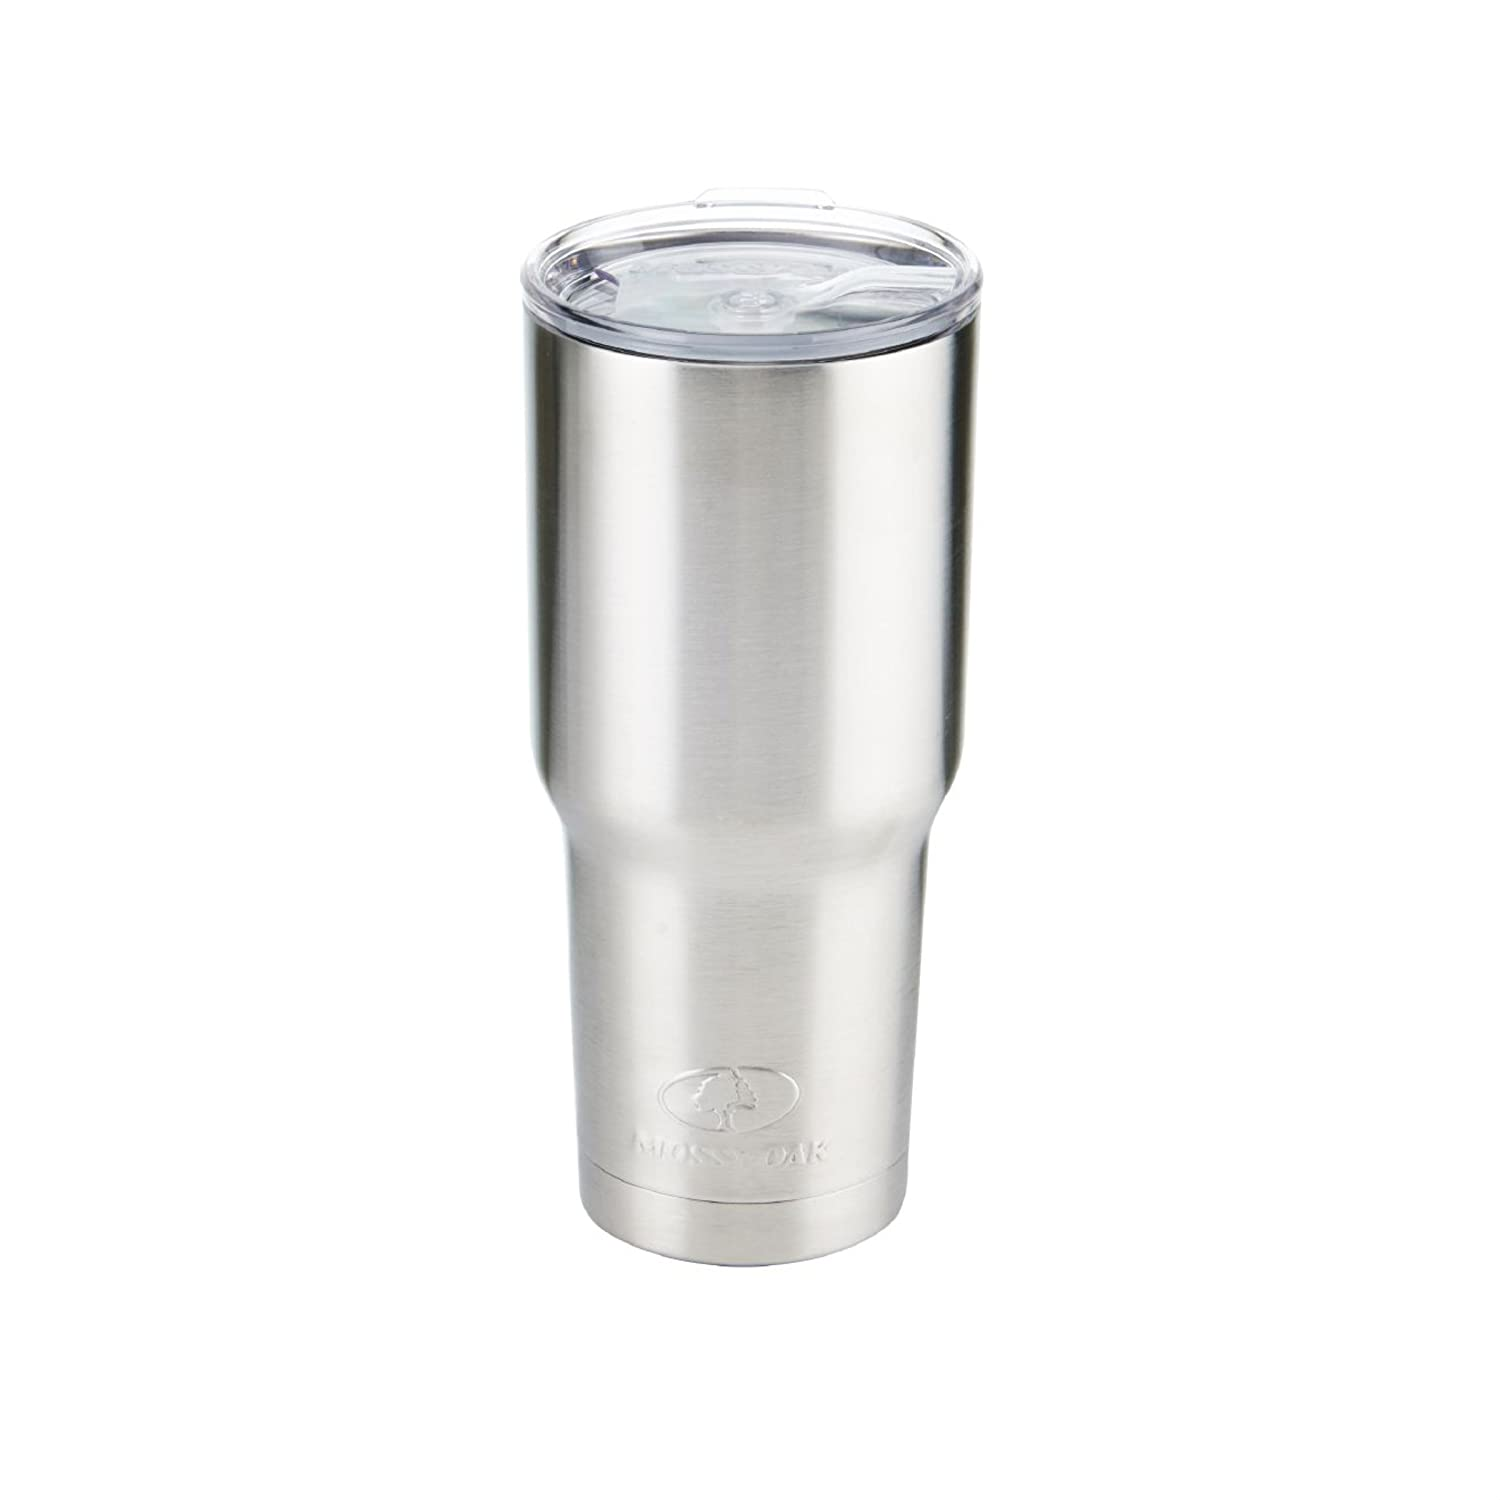 a71a5286f57 Amazon.com: Mossy Oak Double Wall Stainless Steel Insulated Tumbler, 30 oz,  Silver: Kitchen & Dining